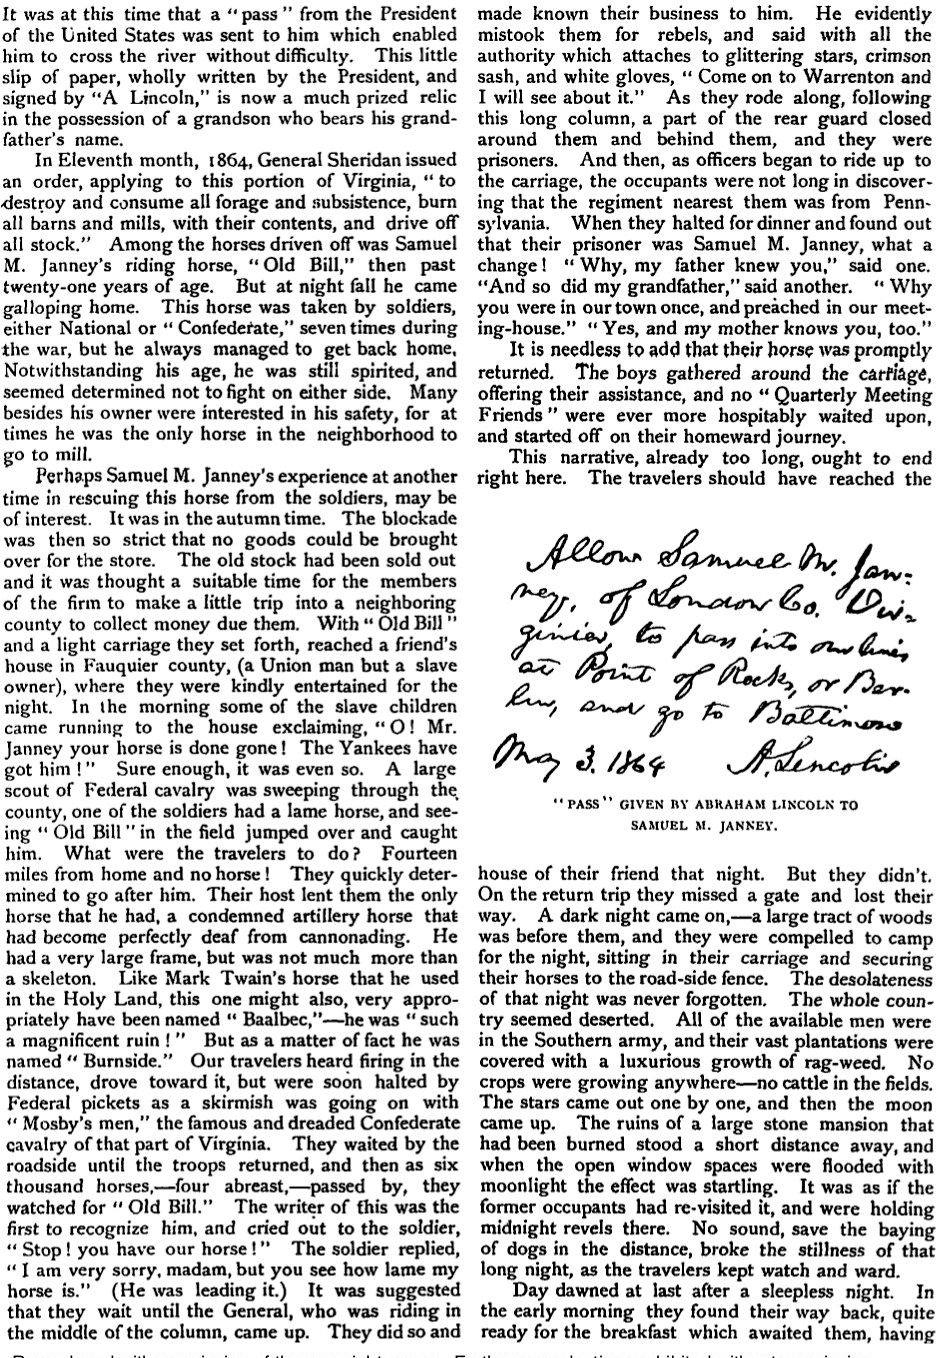 1899-may27-worthyfriends-pg-2-smjanney-ugrr.jpg